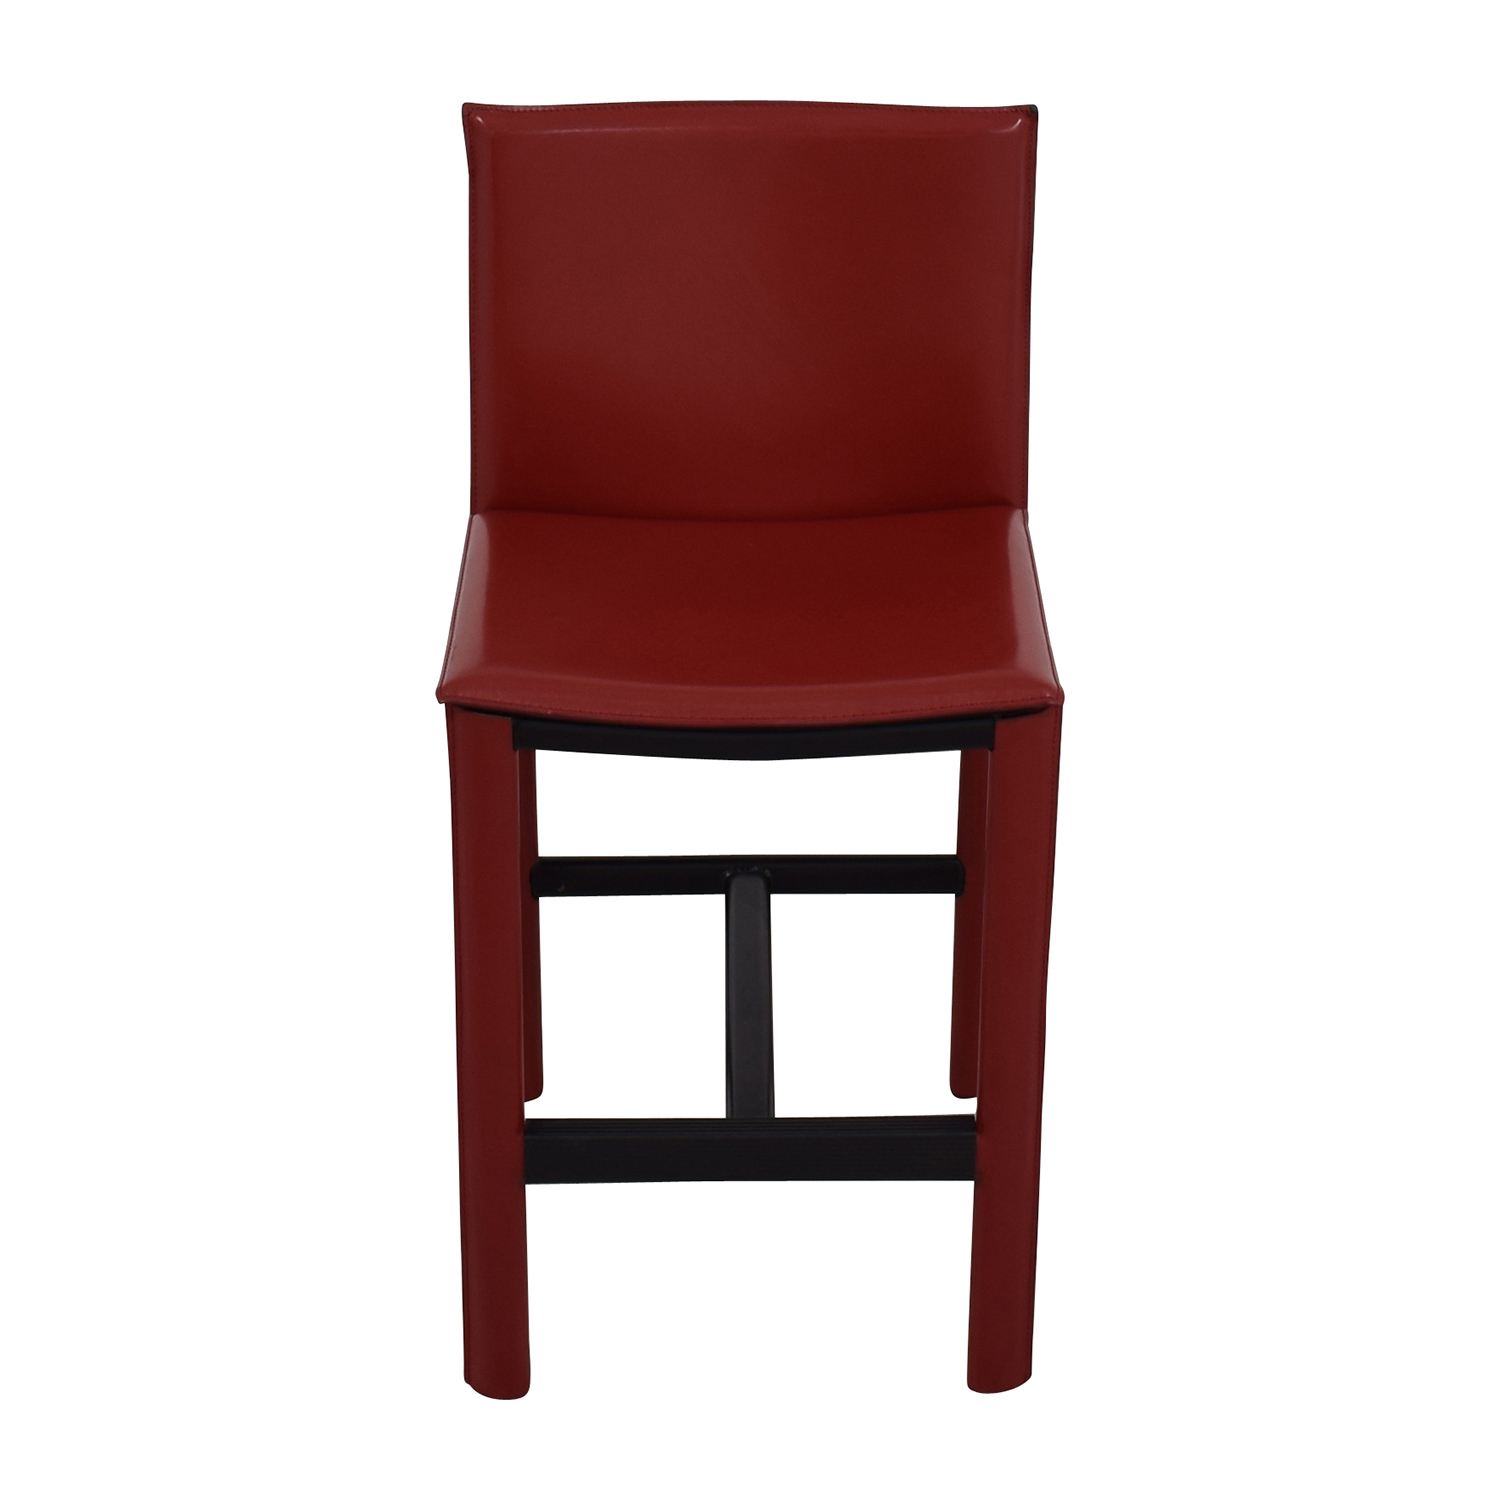 Room & Board Room & Board Sava Bar Stool in Red Leather Stools